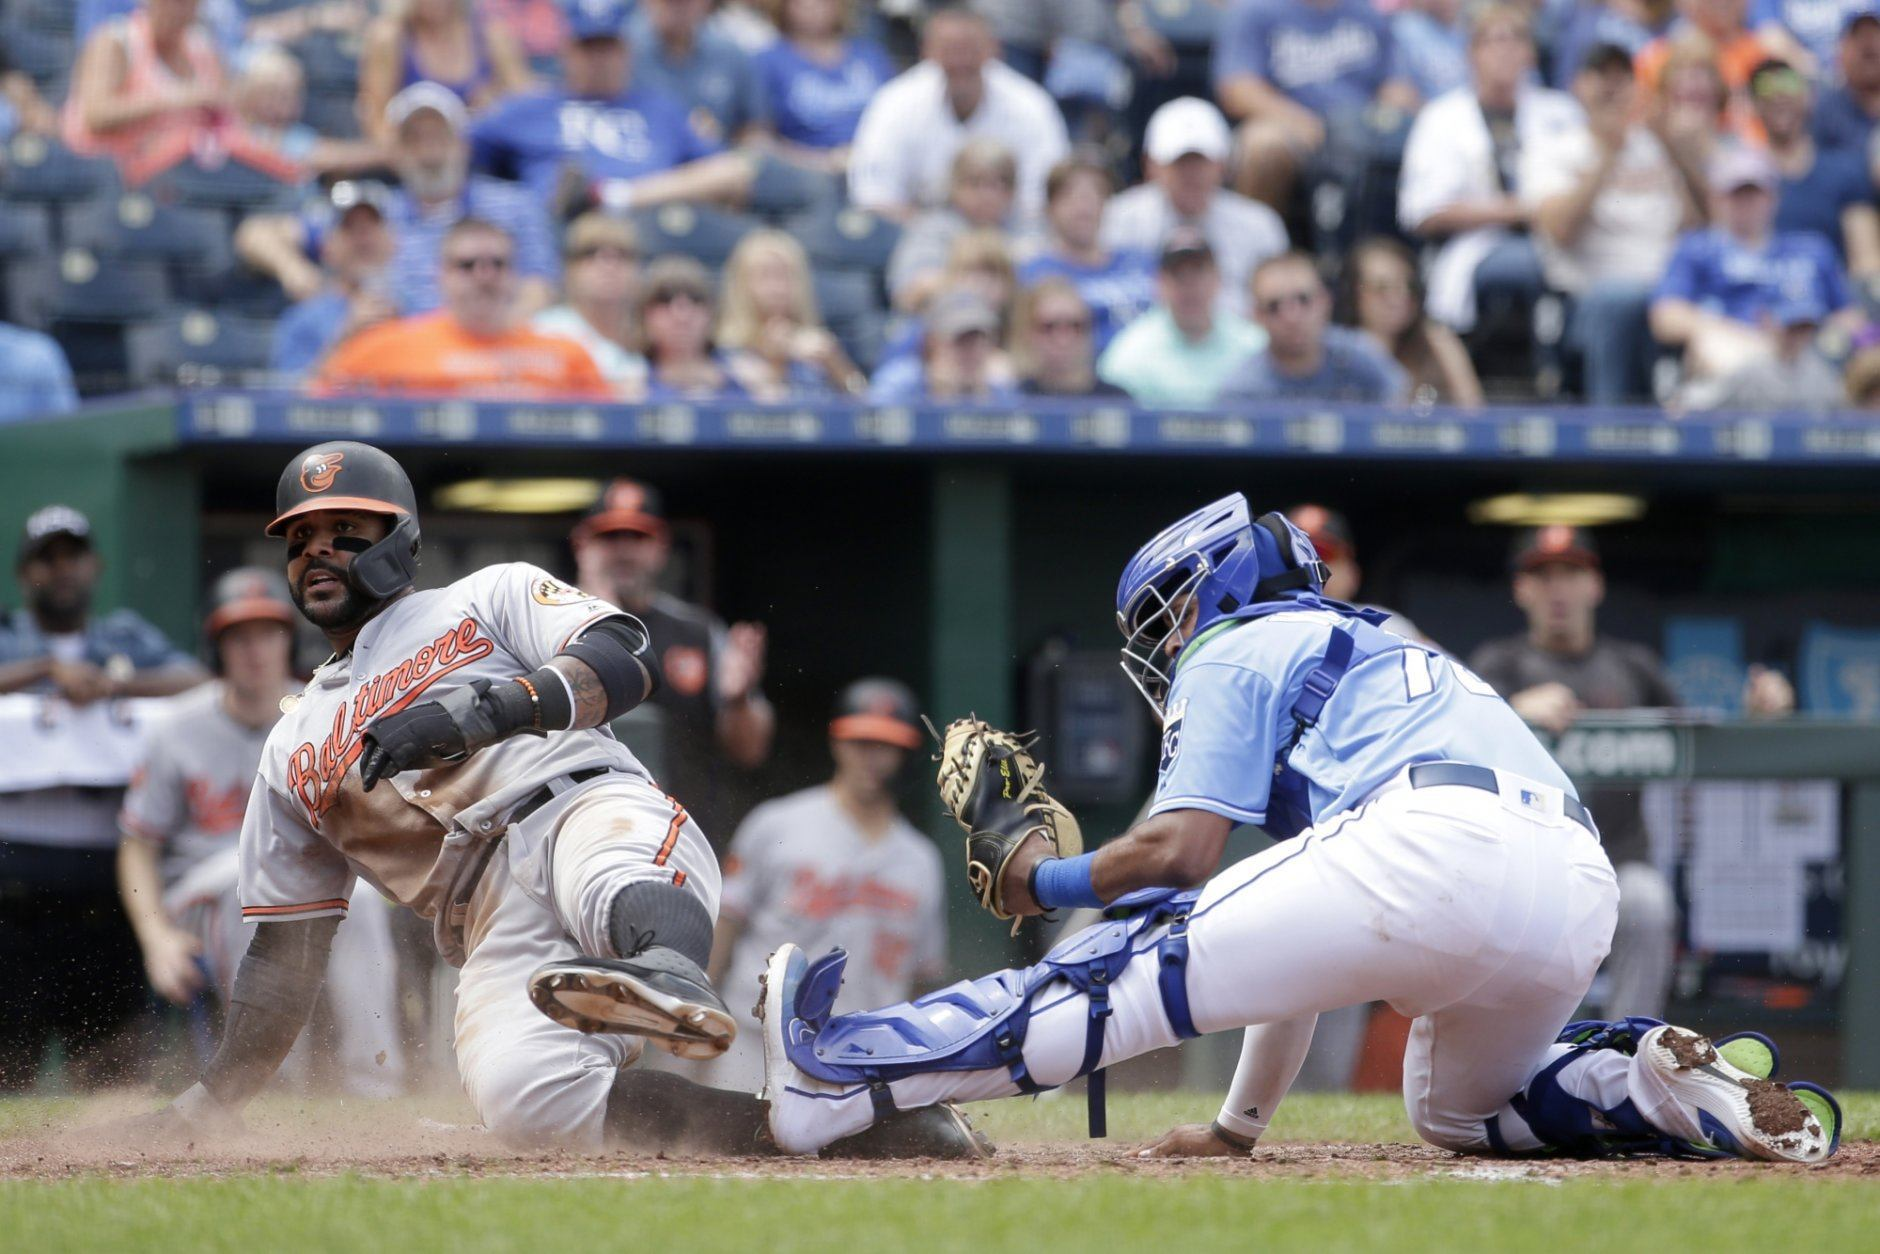 Baltimore Orioles' Jonathan Villar beats the tag by Kansas City Royals catcher Meibrys Viloria to score on a fielders's choice hit into by Pedro Severino during the sixth inning of a baseball game Sunday, Sept. 1, 2019, in Kansas City, Mo. (AP Photo/Charlie Riedel)